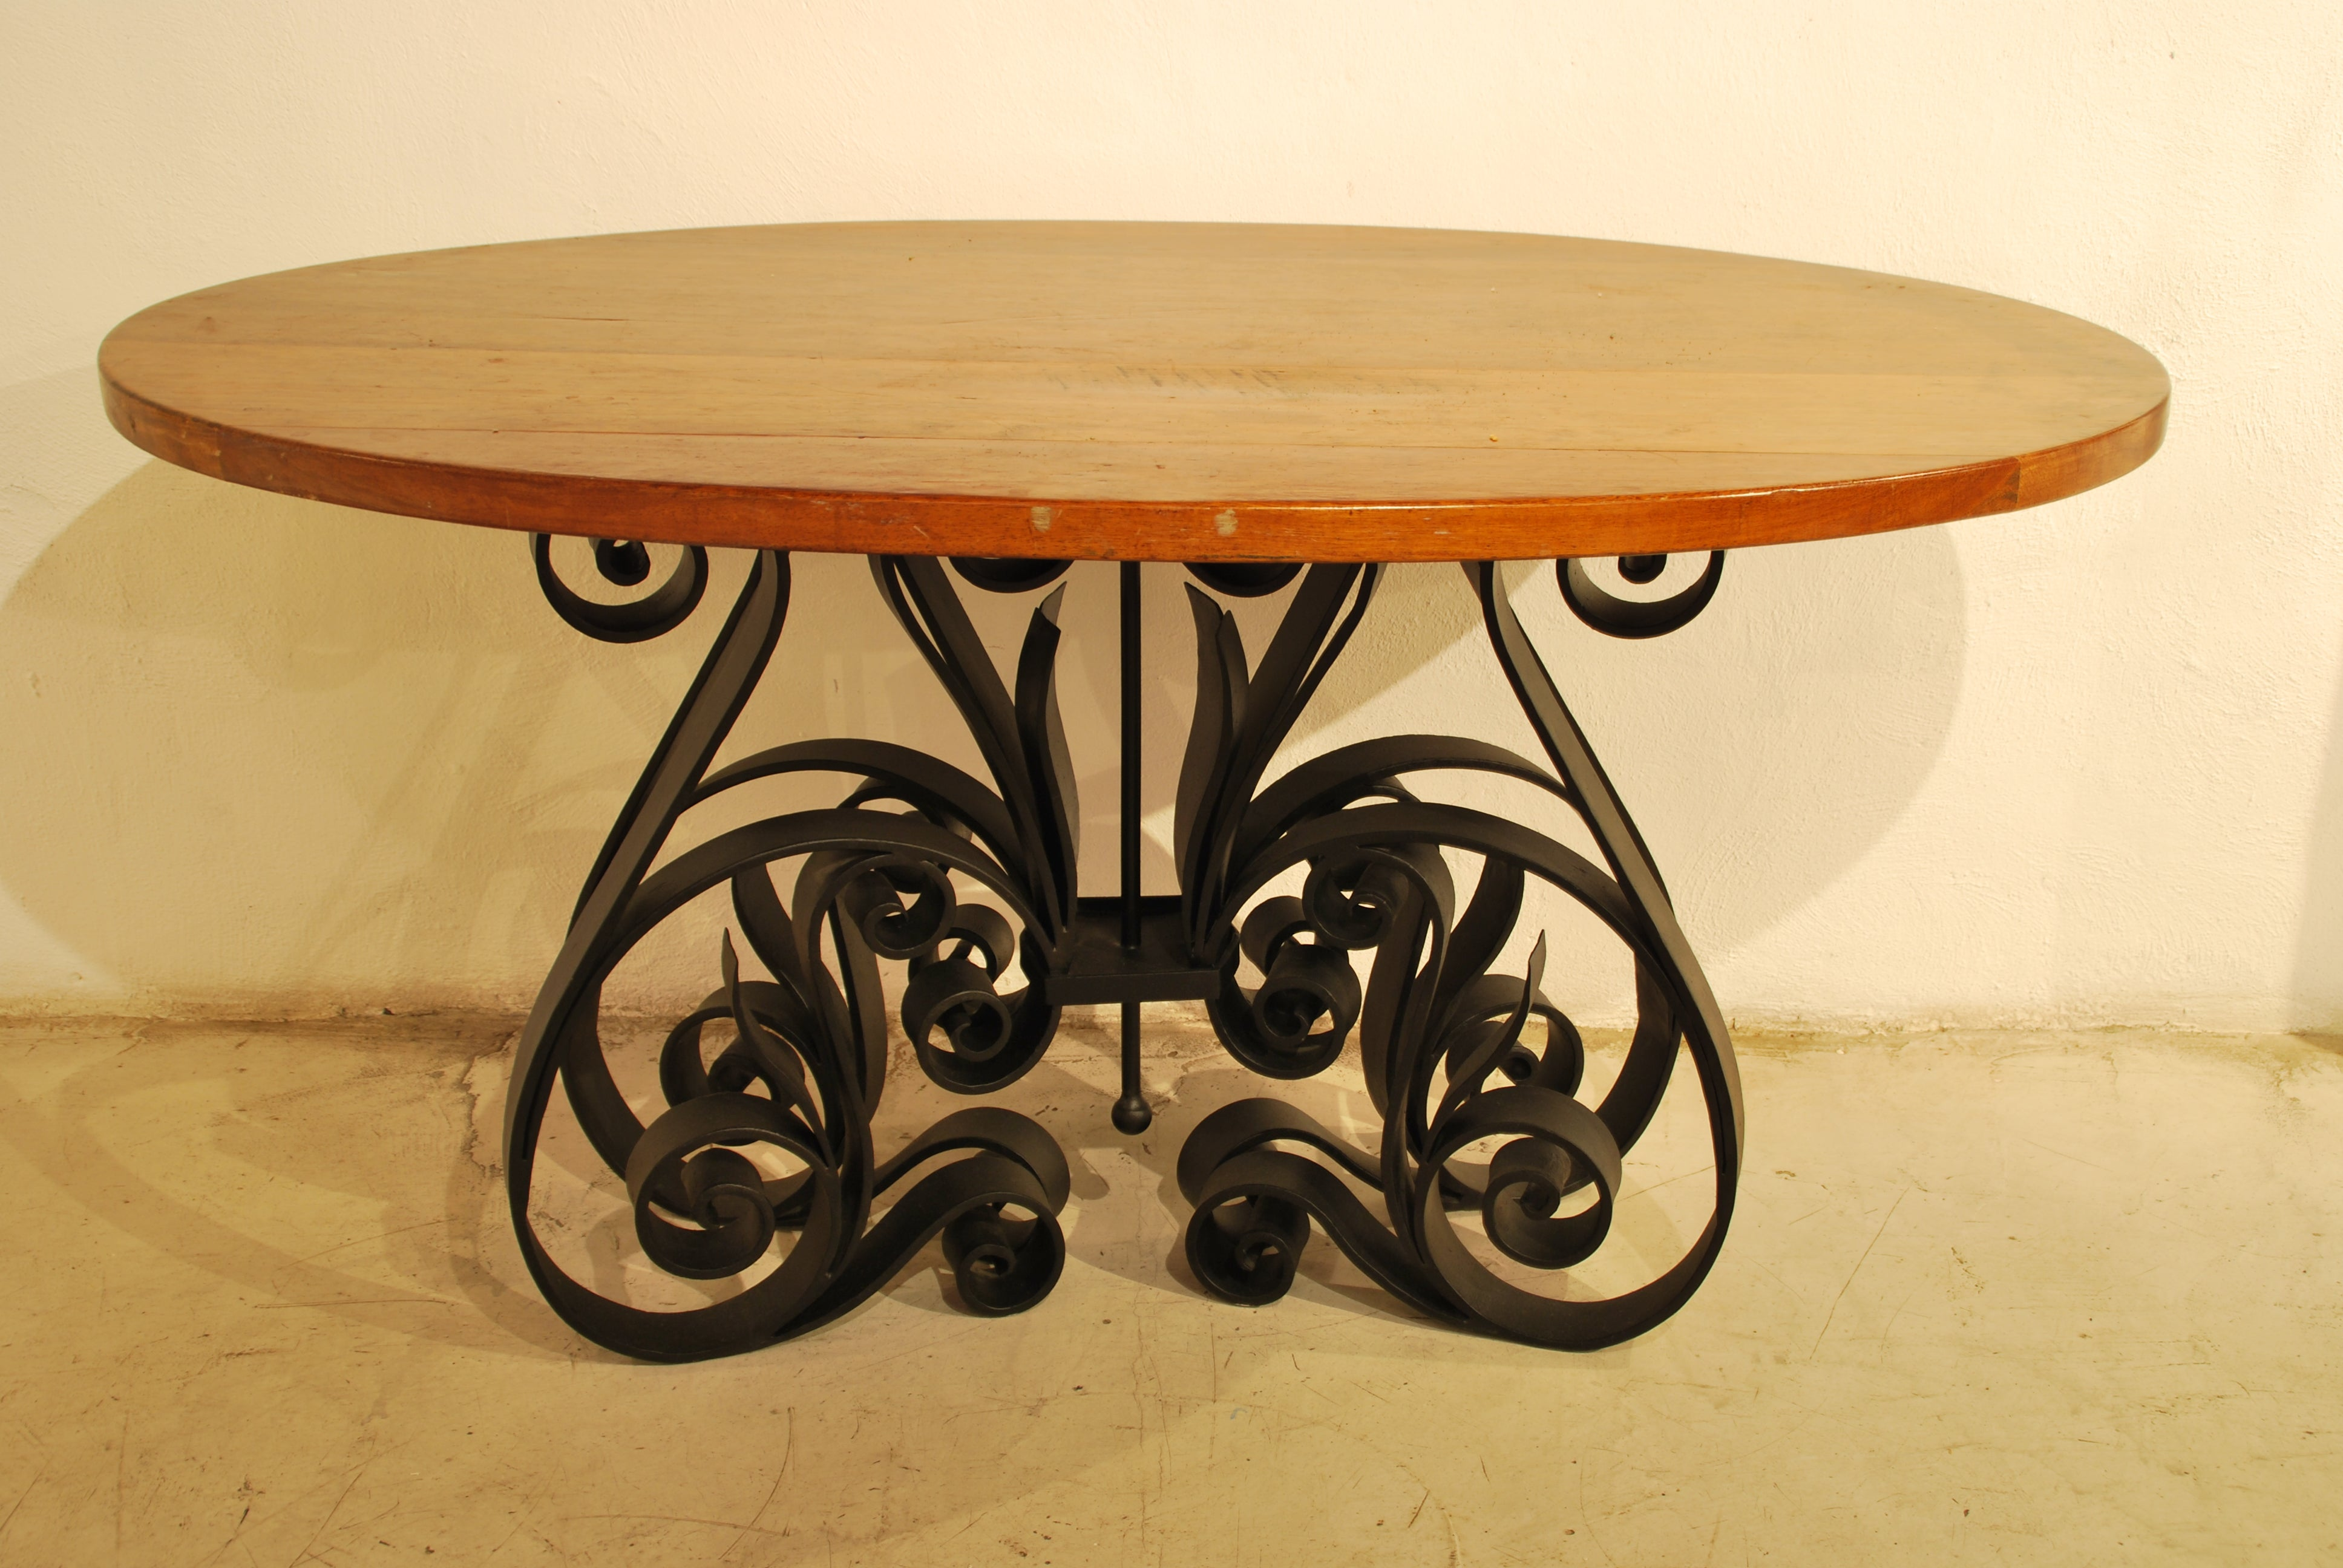 Barn Wood Dining Table - Oval Iron Base